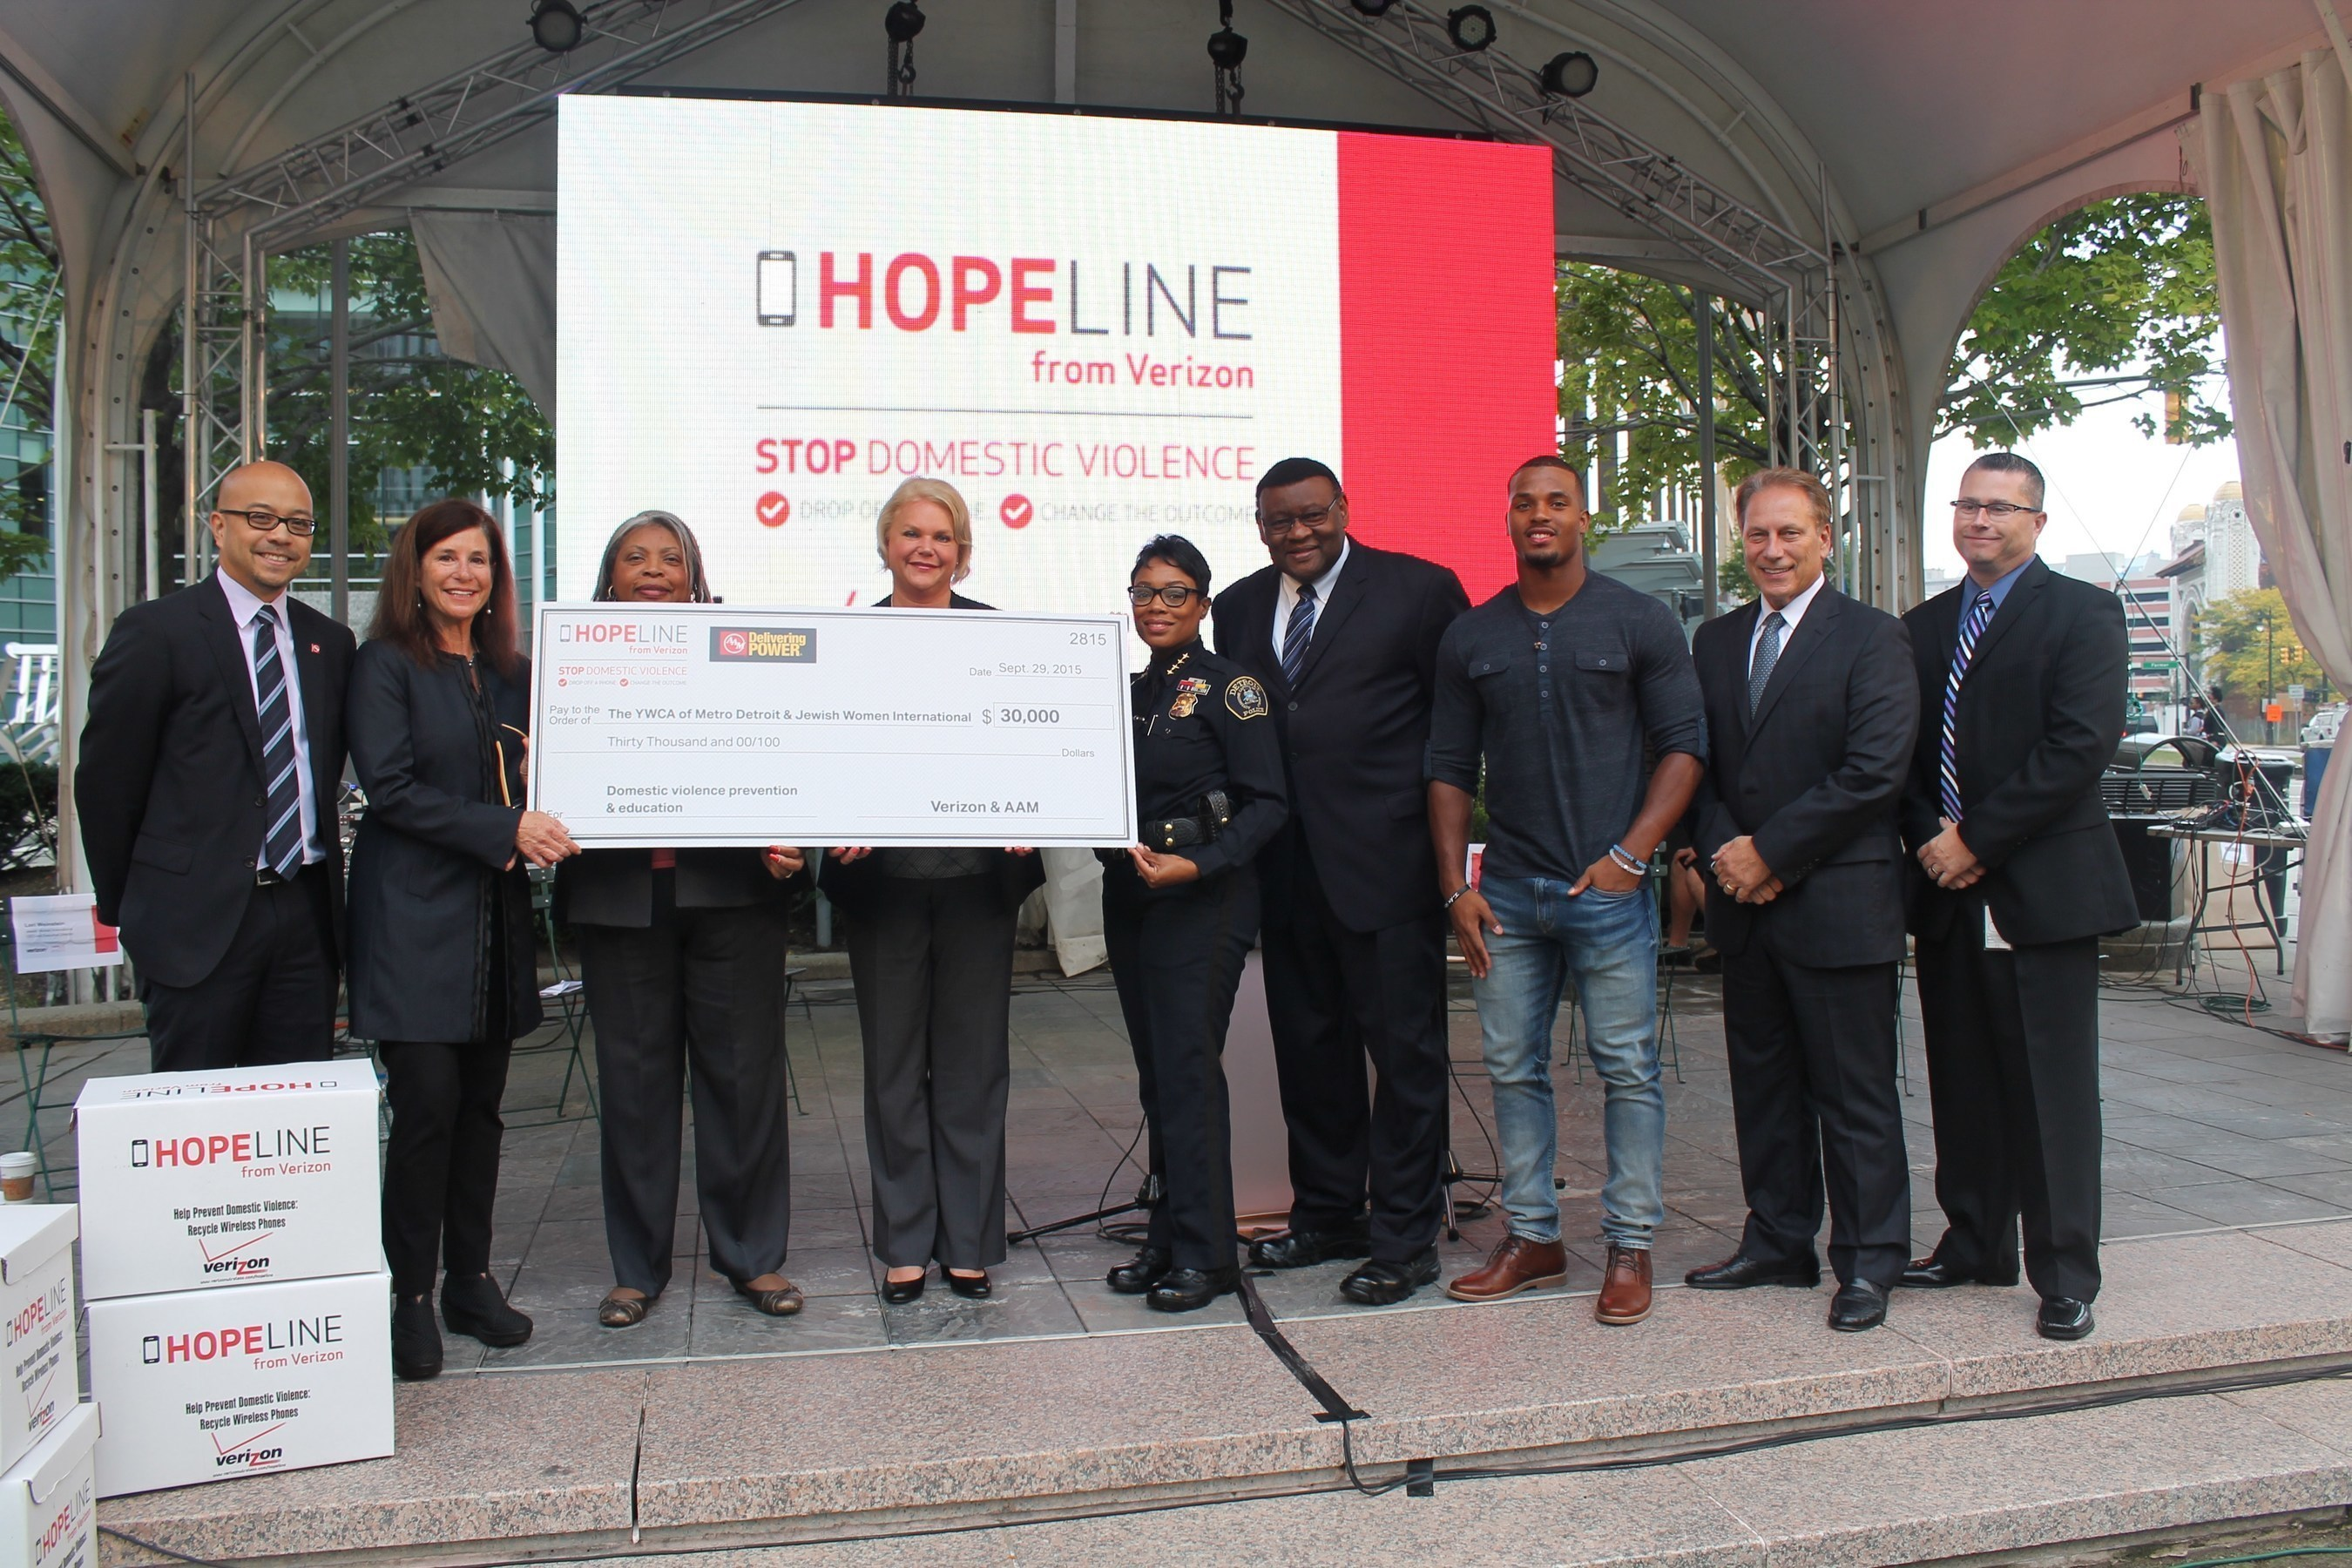 'Rally For Hope' with Detroit Police Department, Deputy Mayor Ike McKinnon, MSU Coach Tom Izzo, Detroit Lions Running Back Ameer Abdullah, Community and Business Leader